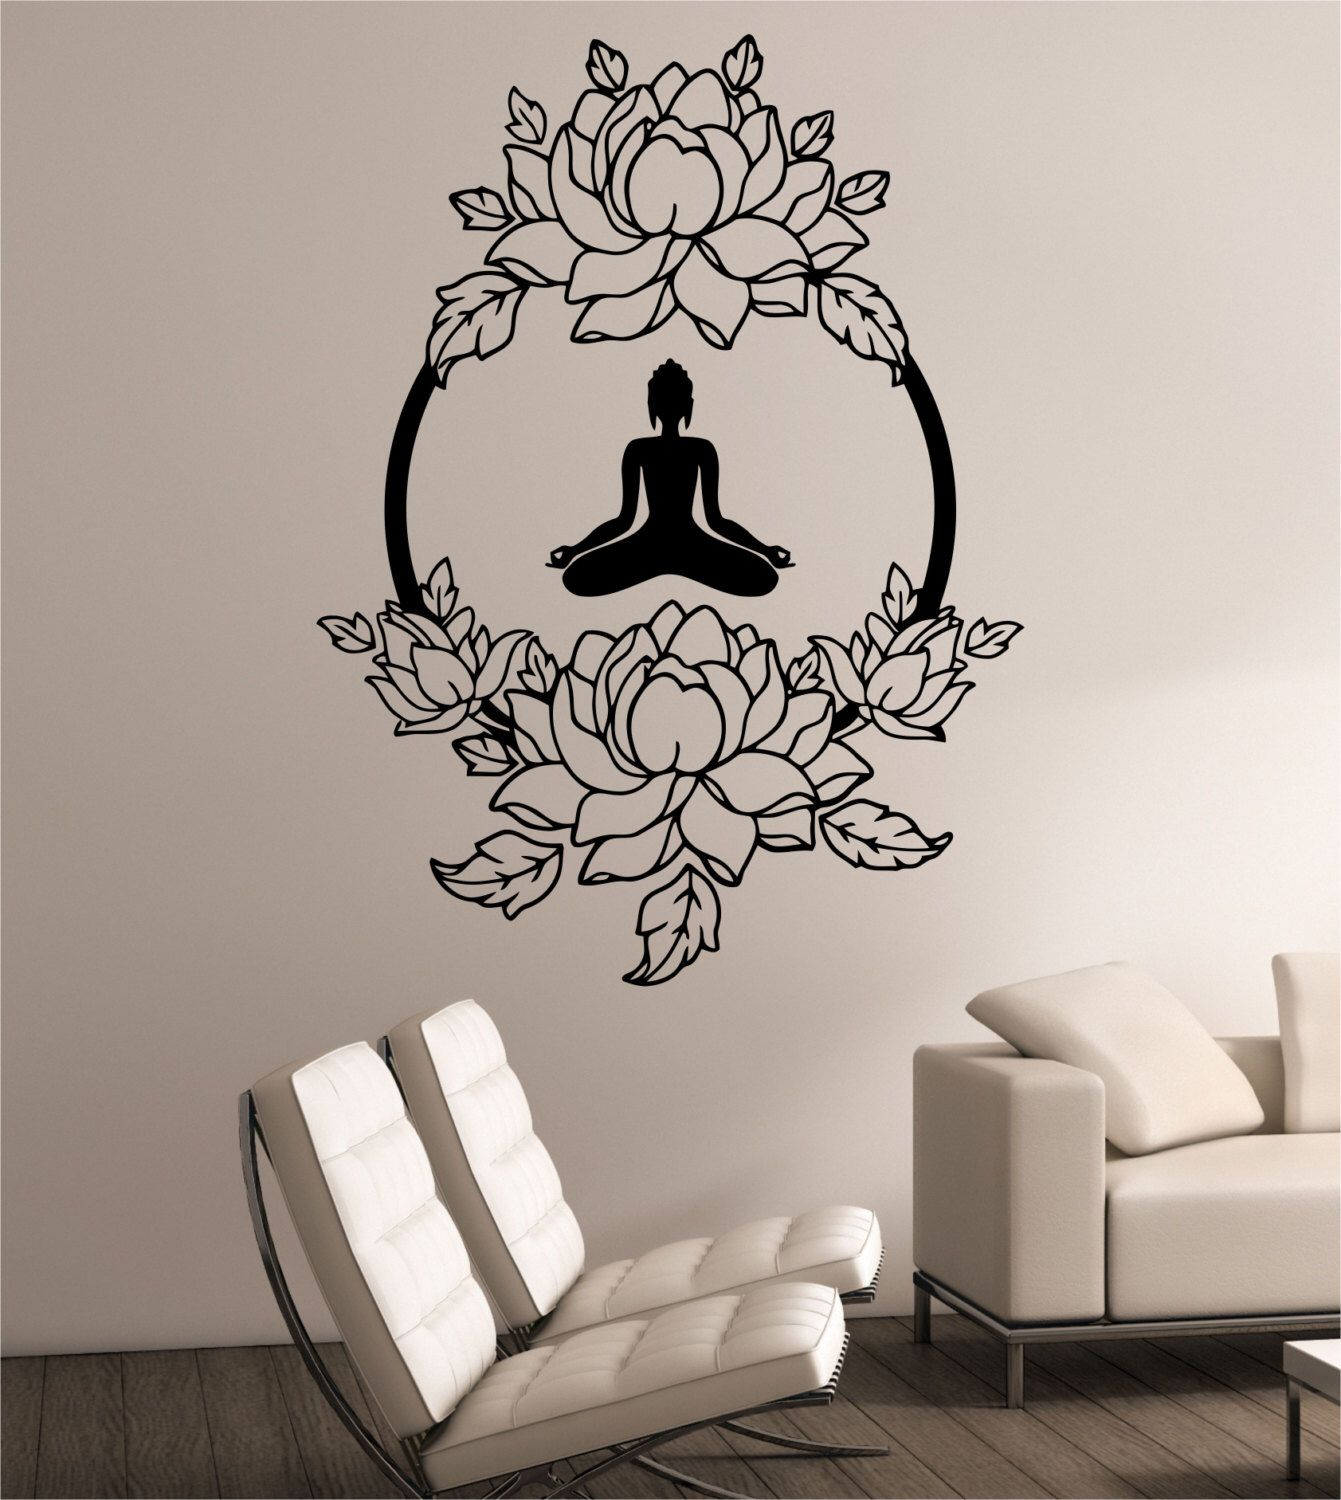 Lotus wall decal meditation sticker art decor bedroom for Bedroom wall art decor